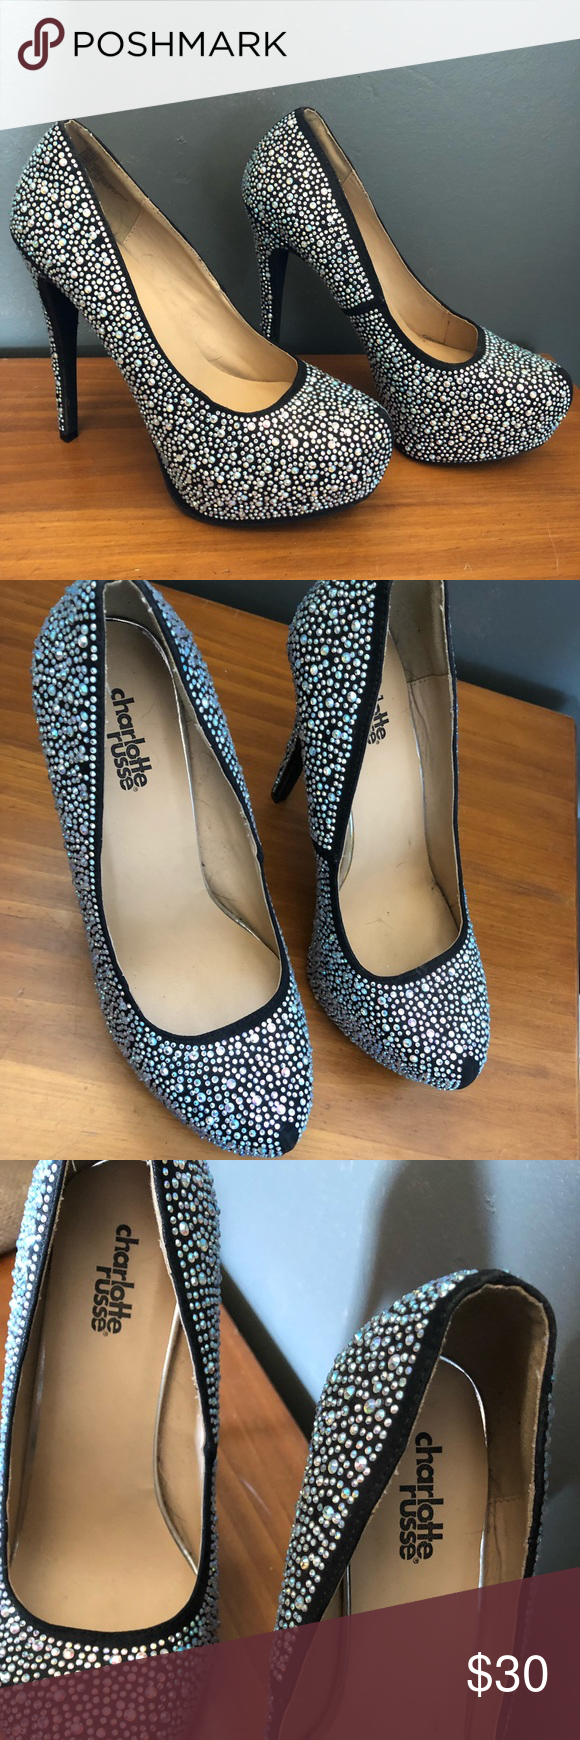 """Charlotte Russe """"Cinderella"""" Heels Brand: Charlotte Reusse  Size: 7 (I normally wear a 7-7.5 and they fit perfectly)  Condition: Brand New & never worn (no tags or original box, purchased for $55) Charlotte Russe Shoes Heels"""